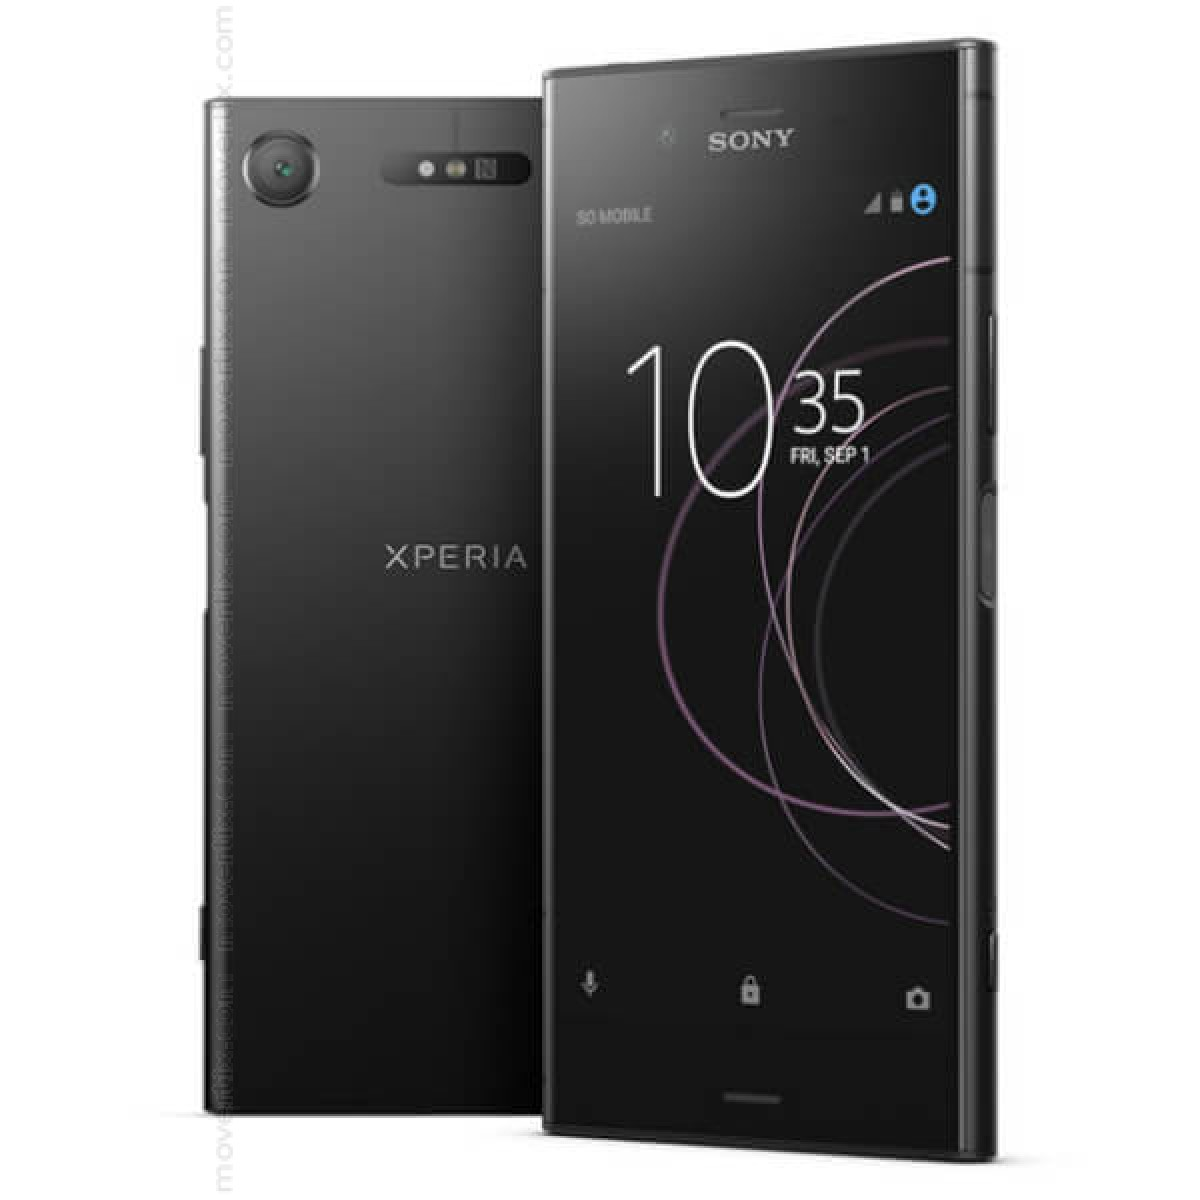 sony xperia xz1 noir g8341 7311271596264 movertix t l phones mobiles et smartphones. Black Bedroom Furniture Sets. Home Design Ideas